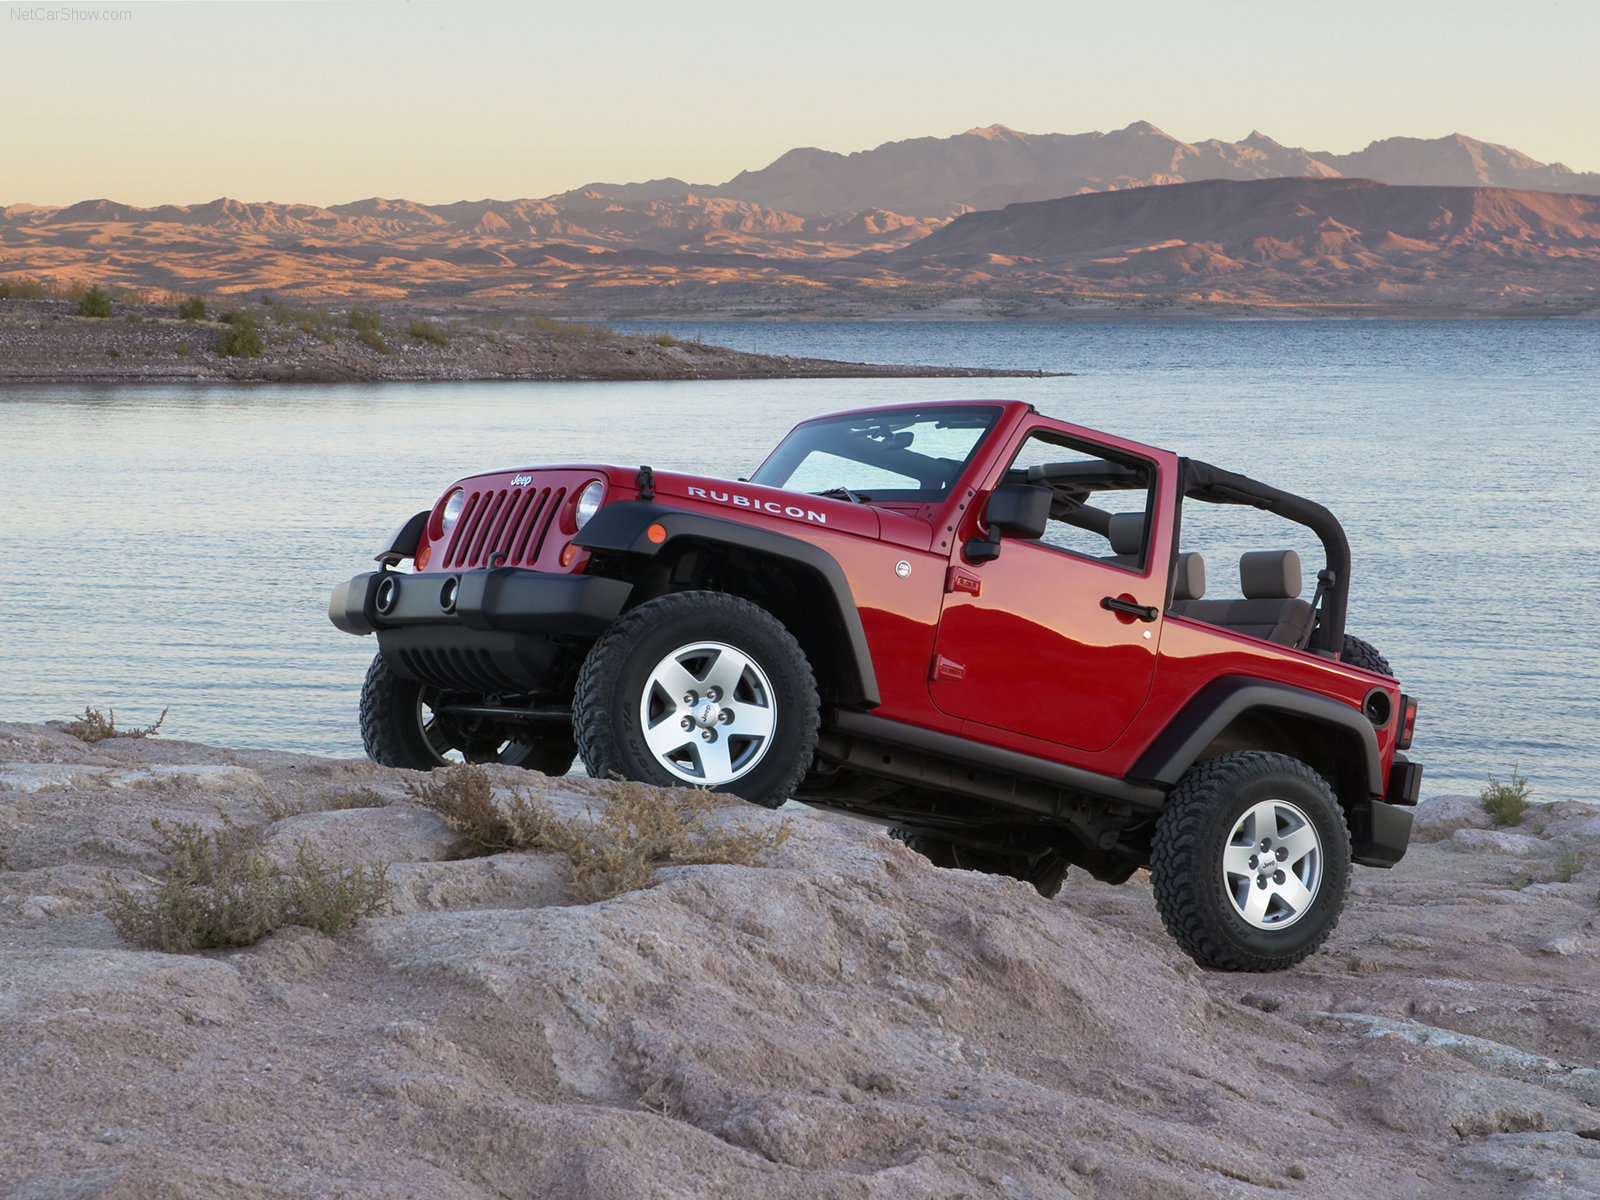 The best off-road vehicles 2011 - 2012 | Drive South Africa